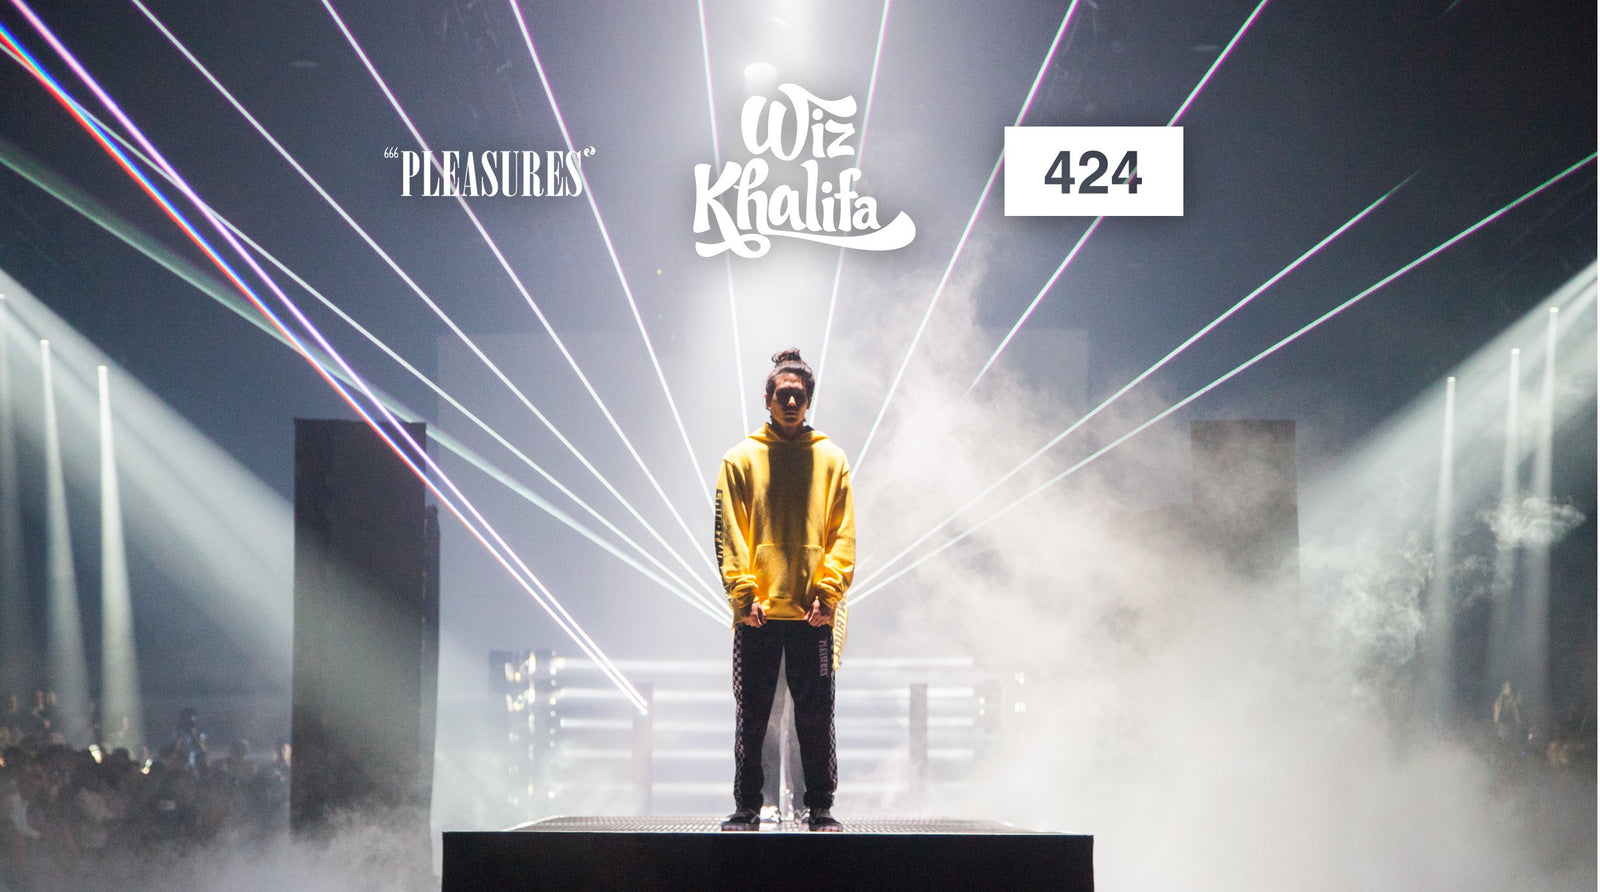 Wiz Khalifa × 424 + Pleasures